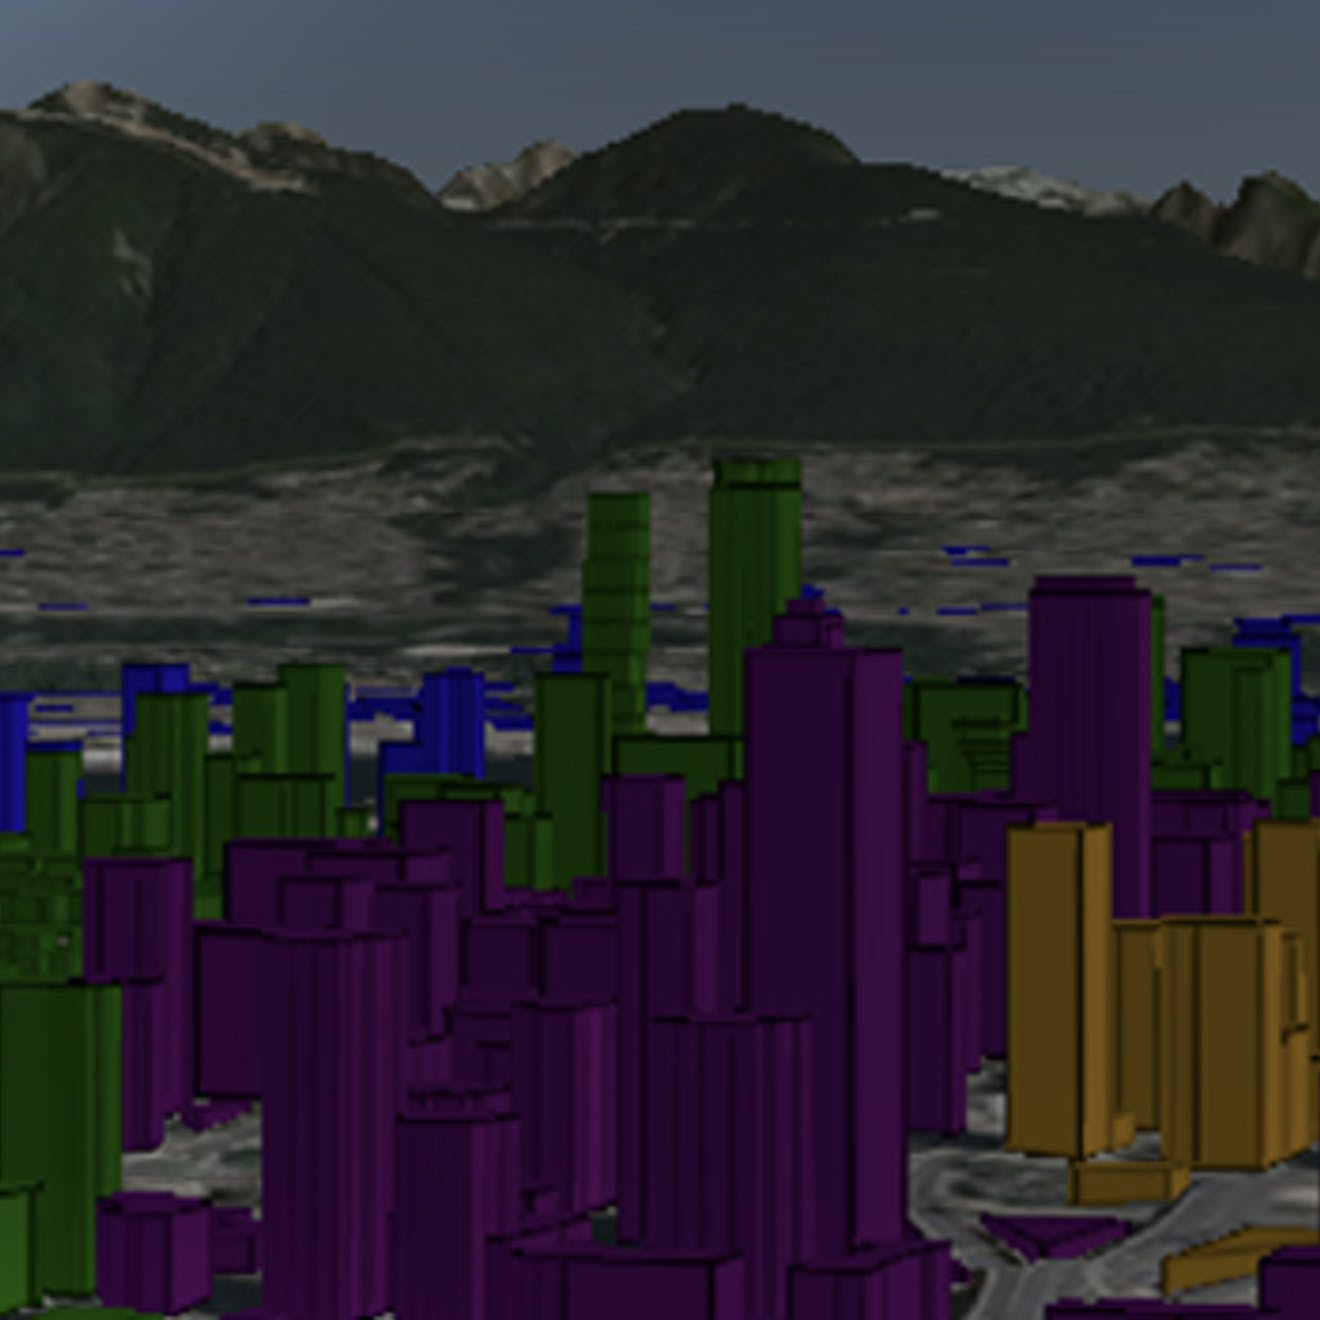 The Vancouver skyline with mountains in the background and untextured buildings colored based on distance from a building on the right